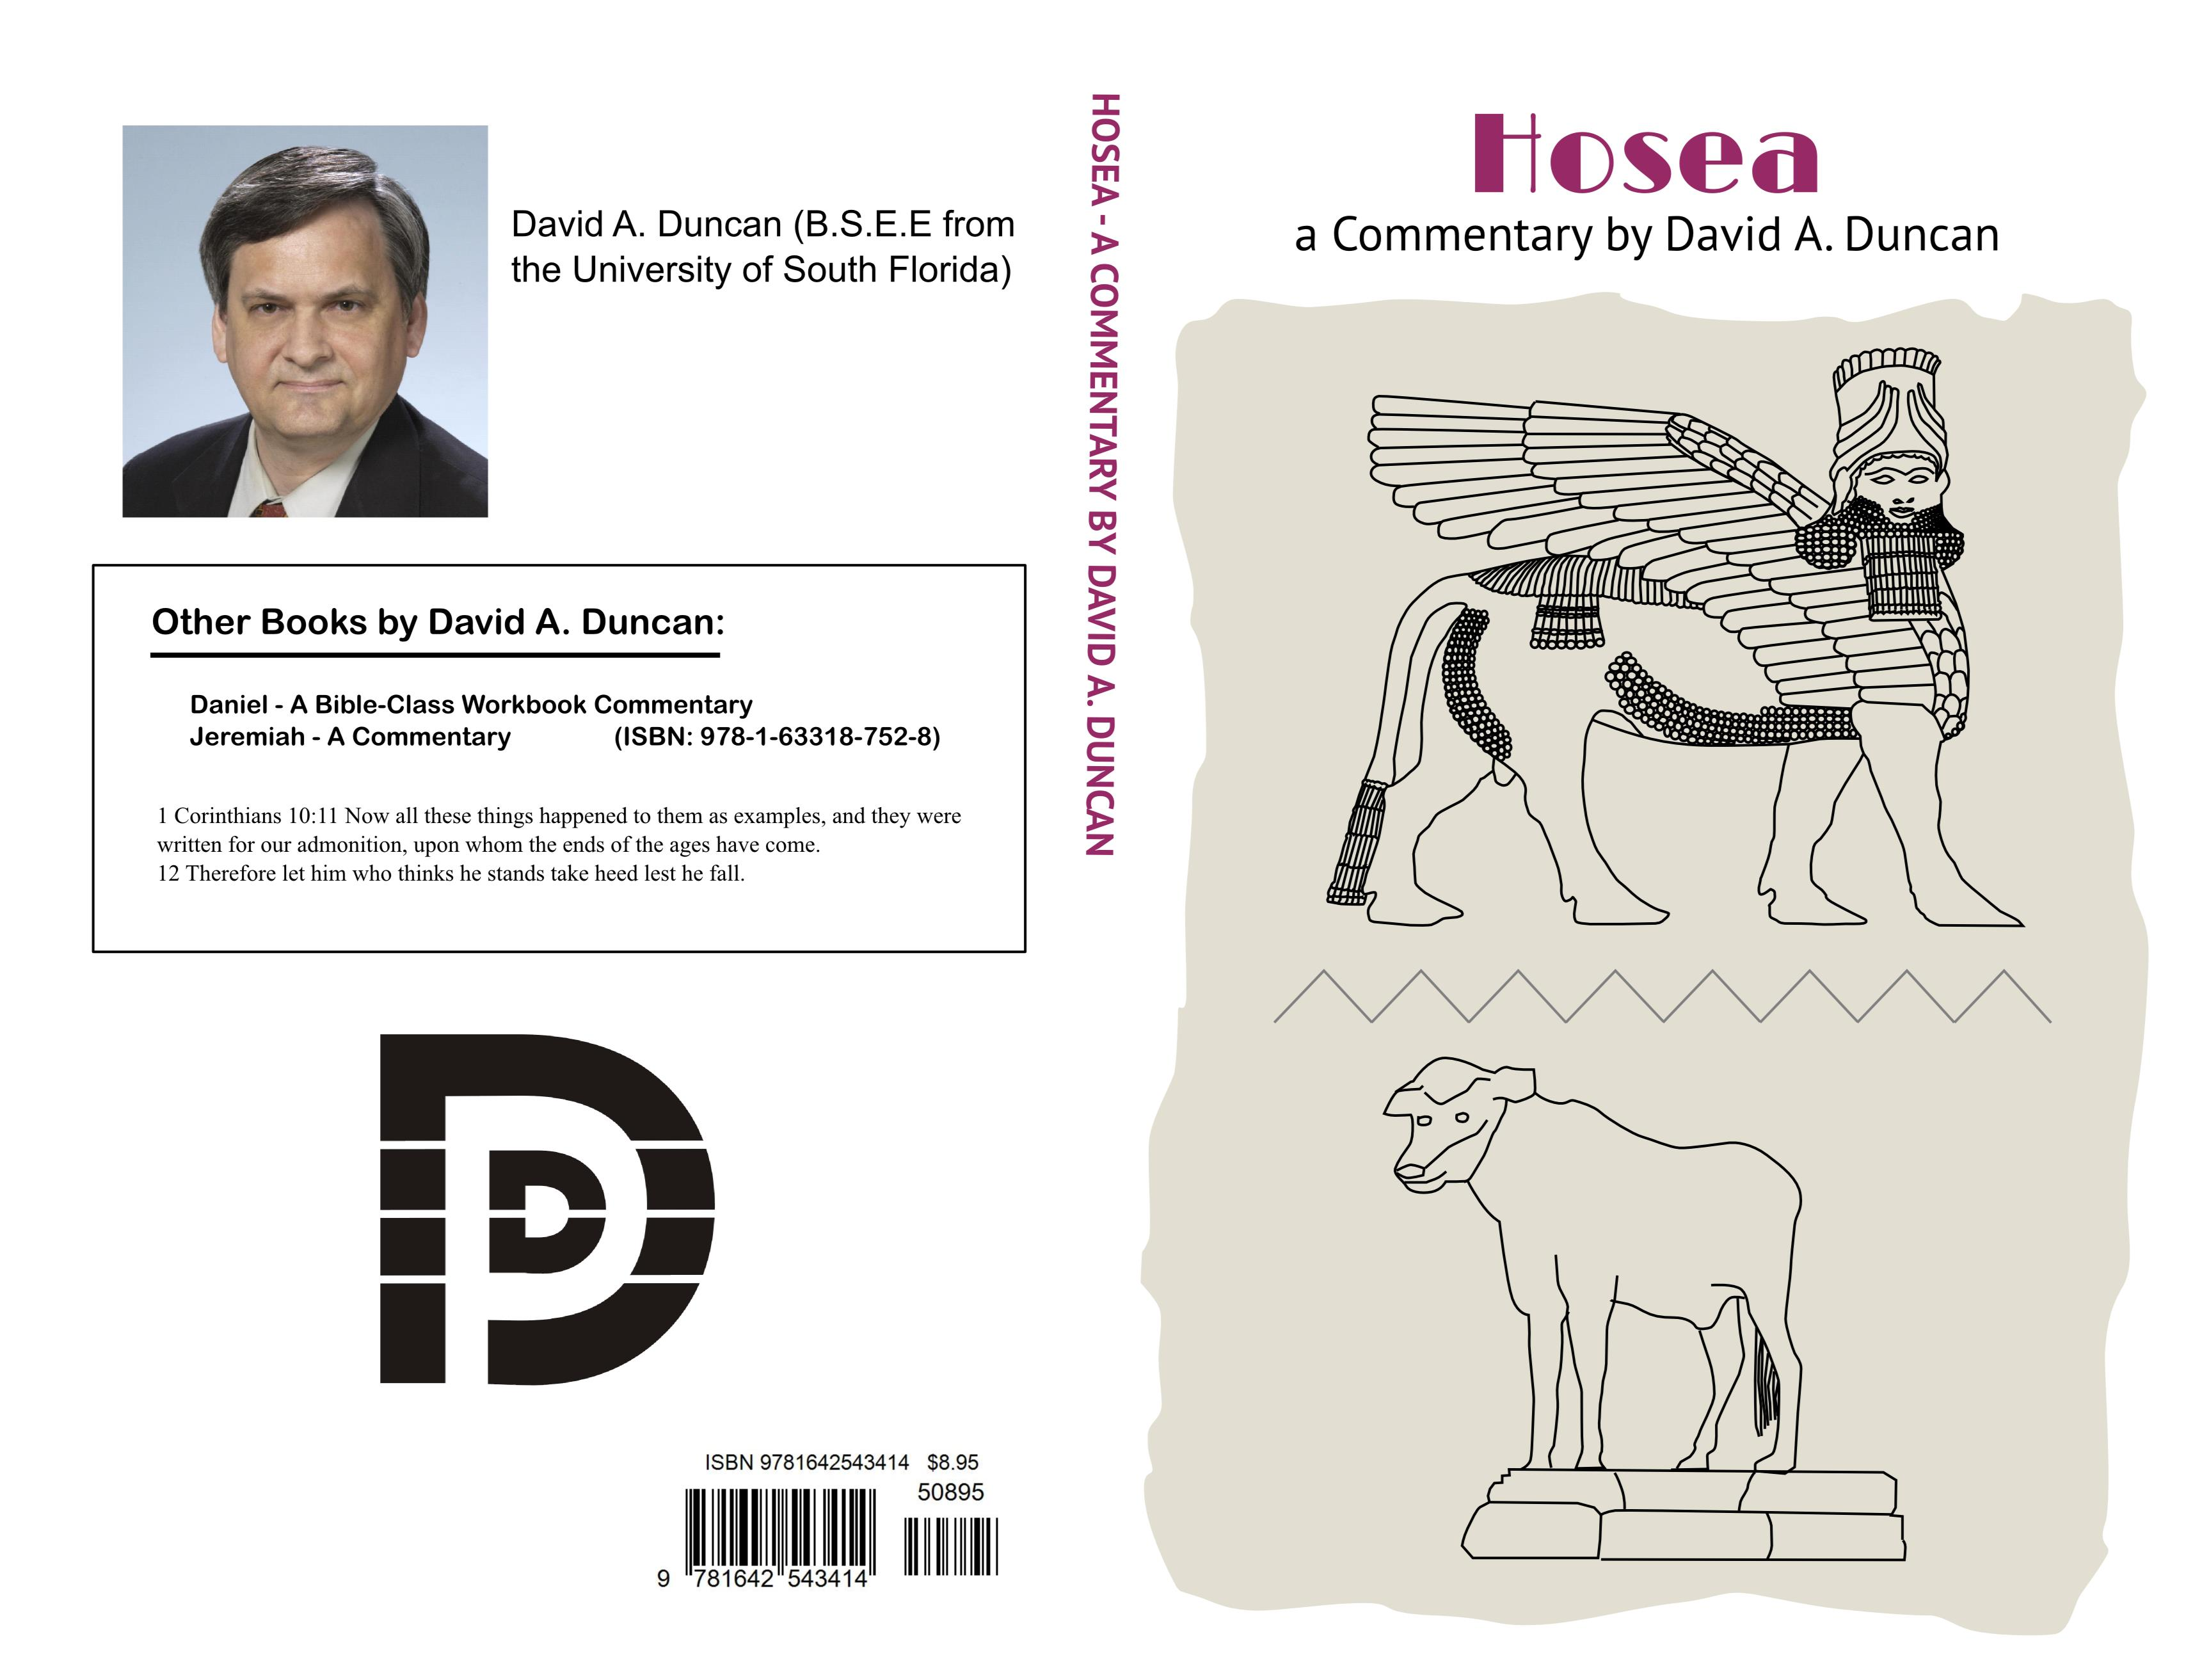 Hosea - A Commentary by David A. Duncan cover image